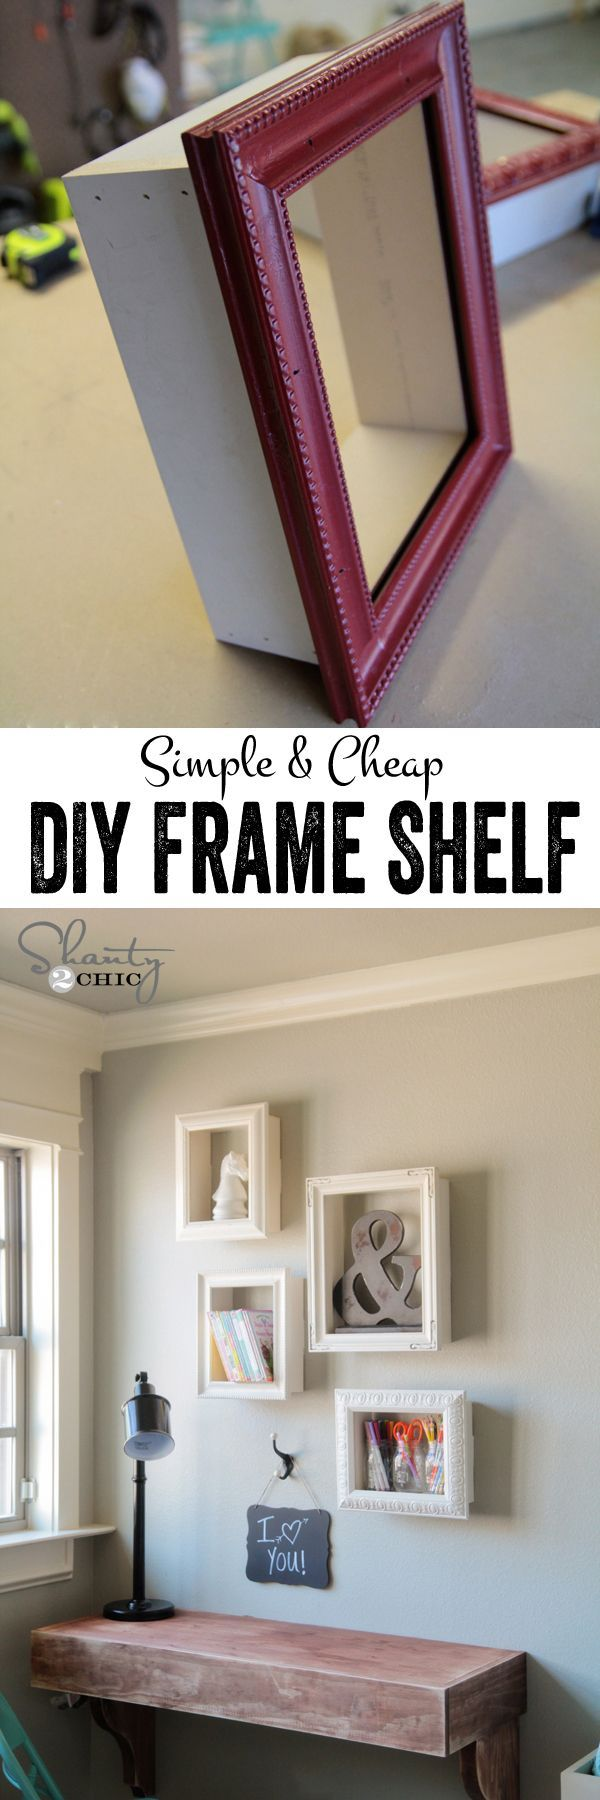 frame-shelf